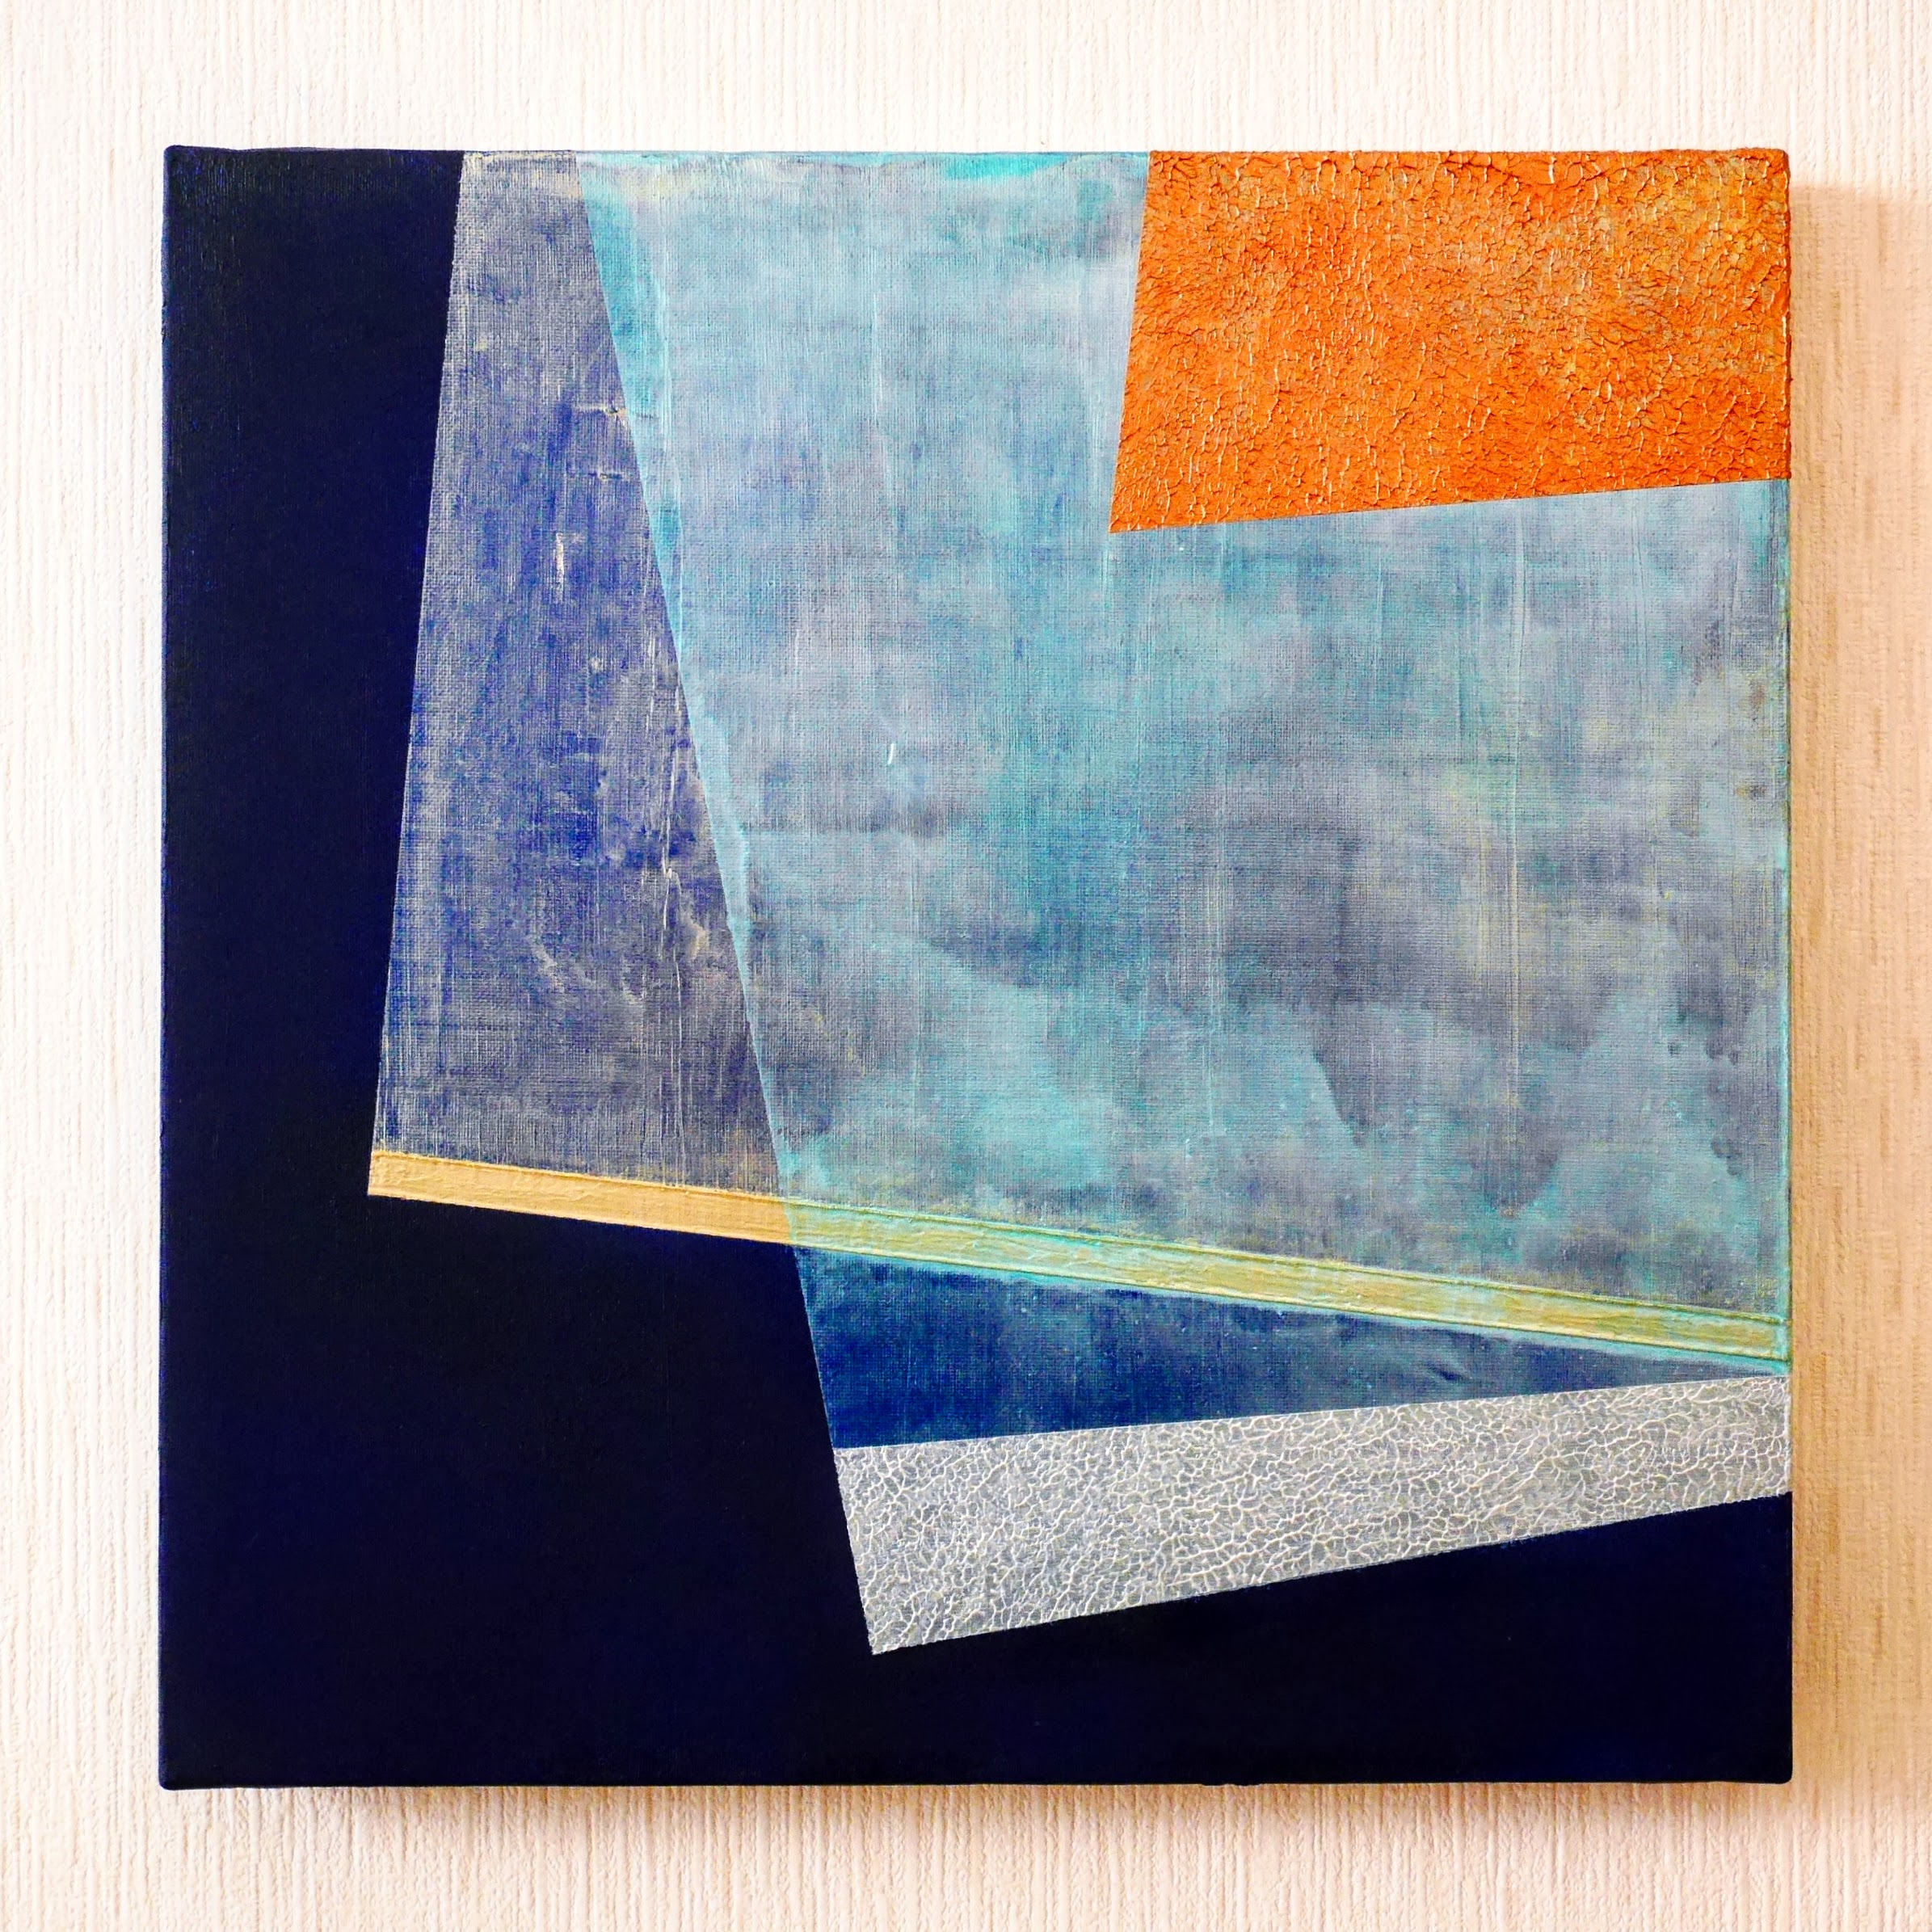 Composition – Metal layer